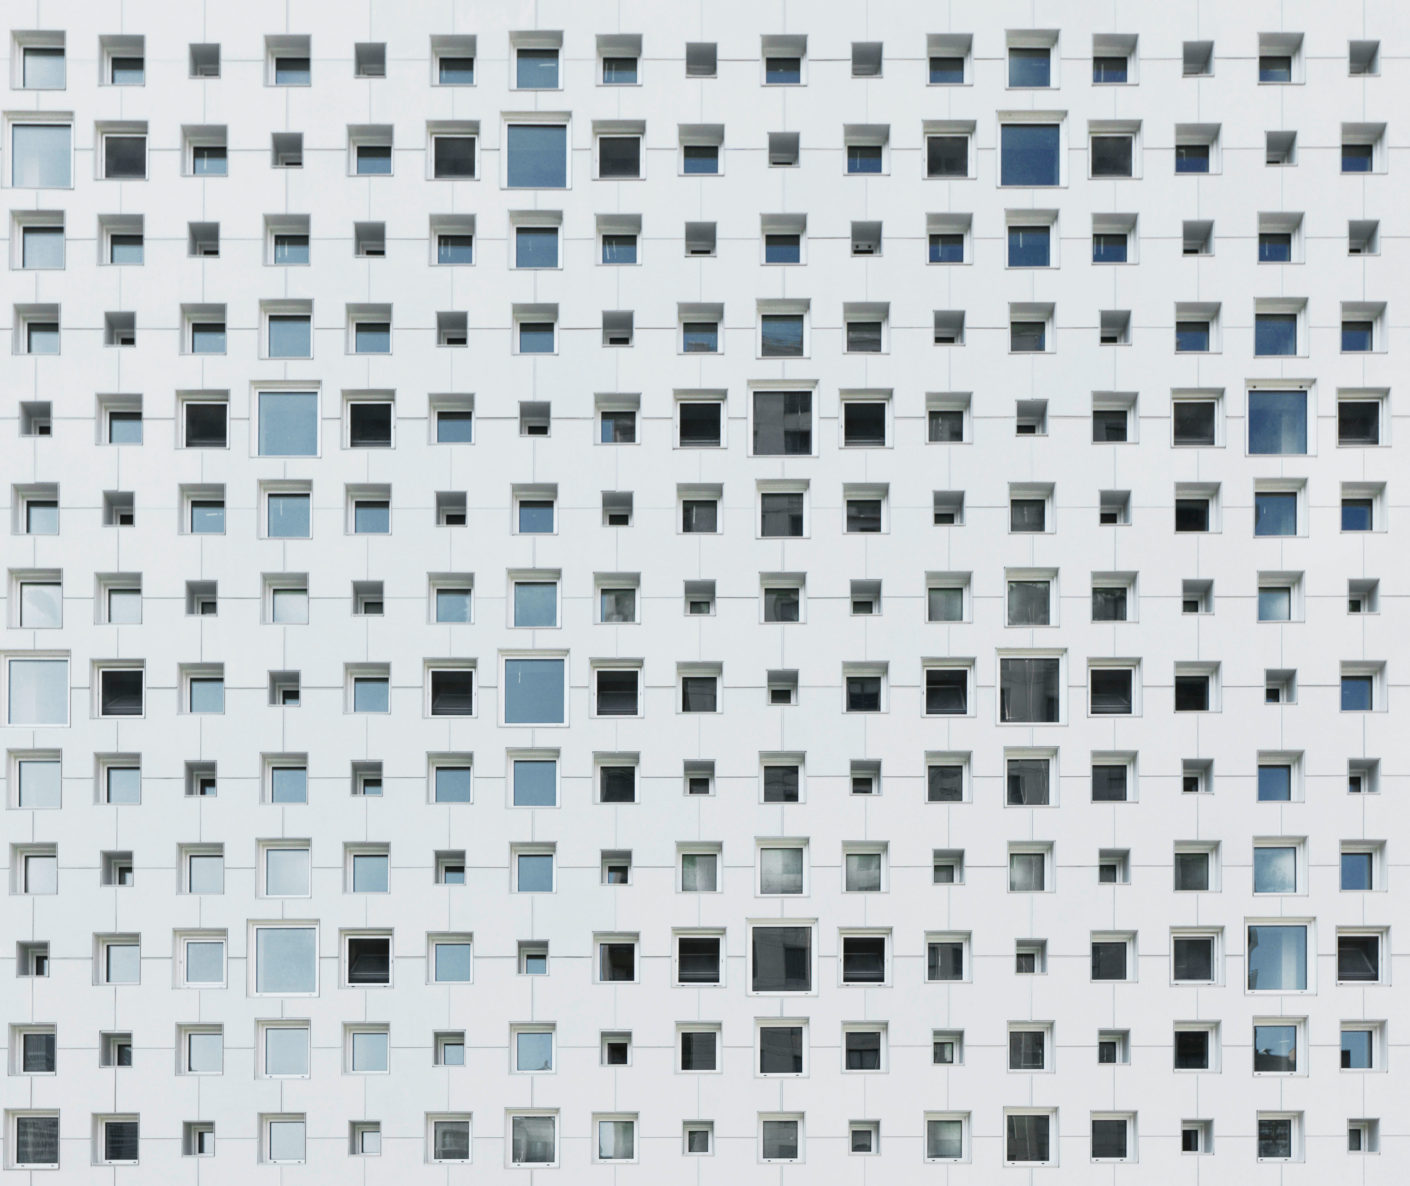 The architects of the new building were inspired by old lace embroidery and patterned wallpaper to create an elegant perforated pattern as a facade.